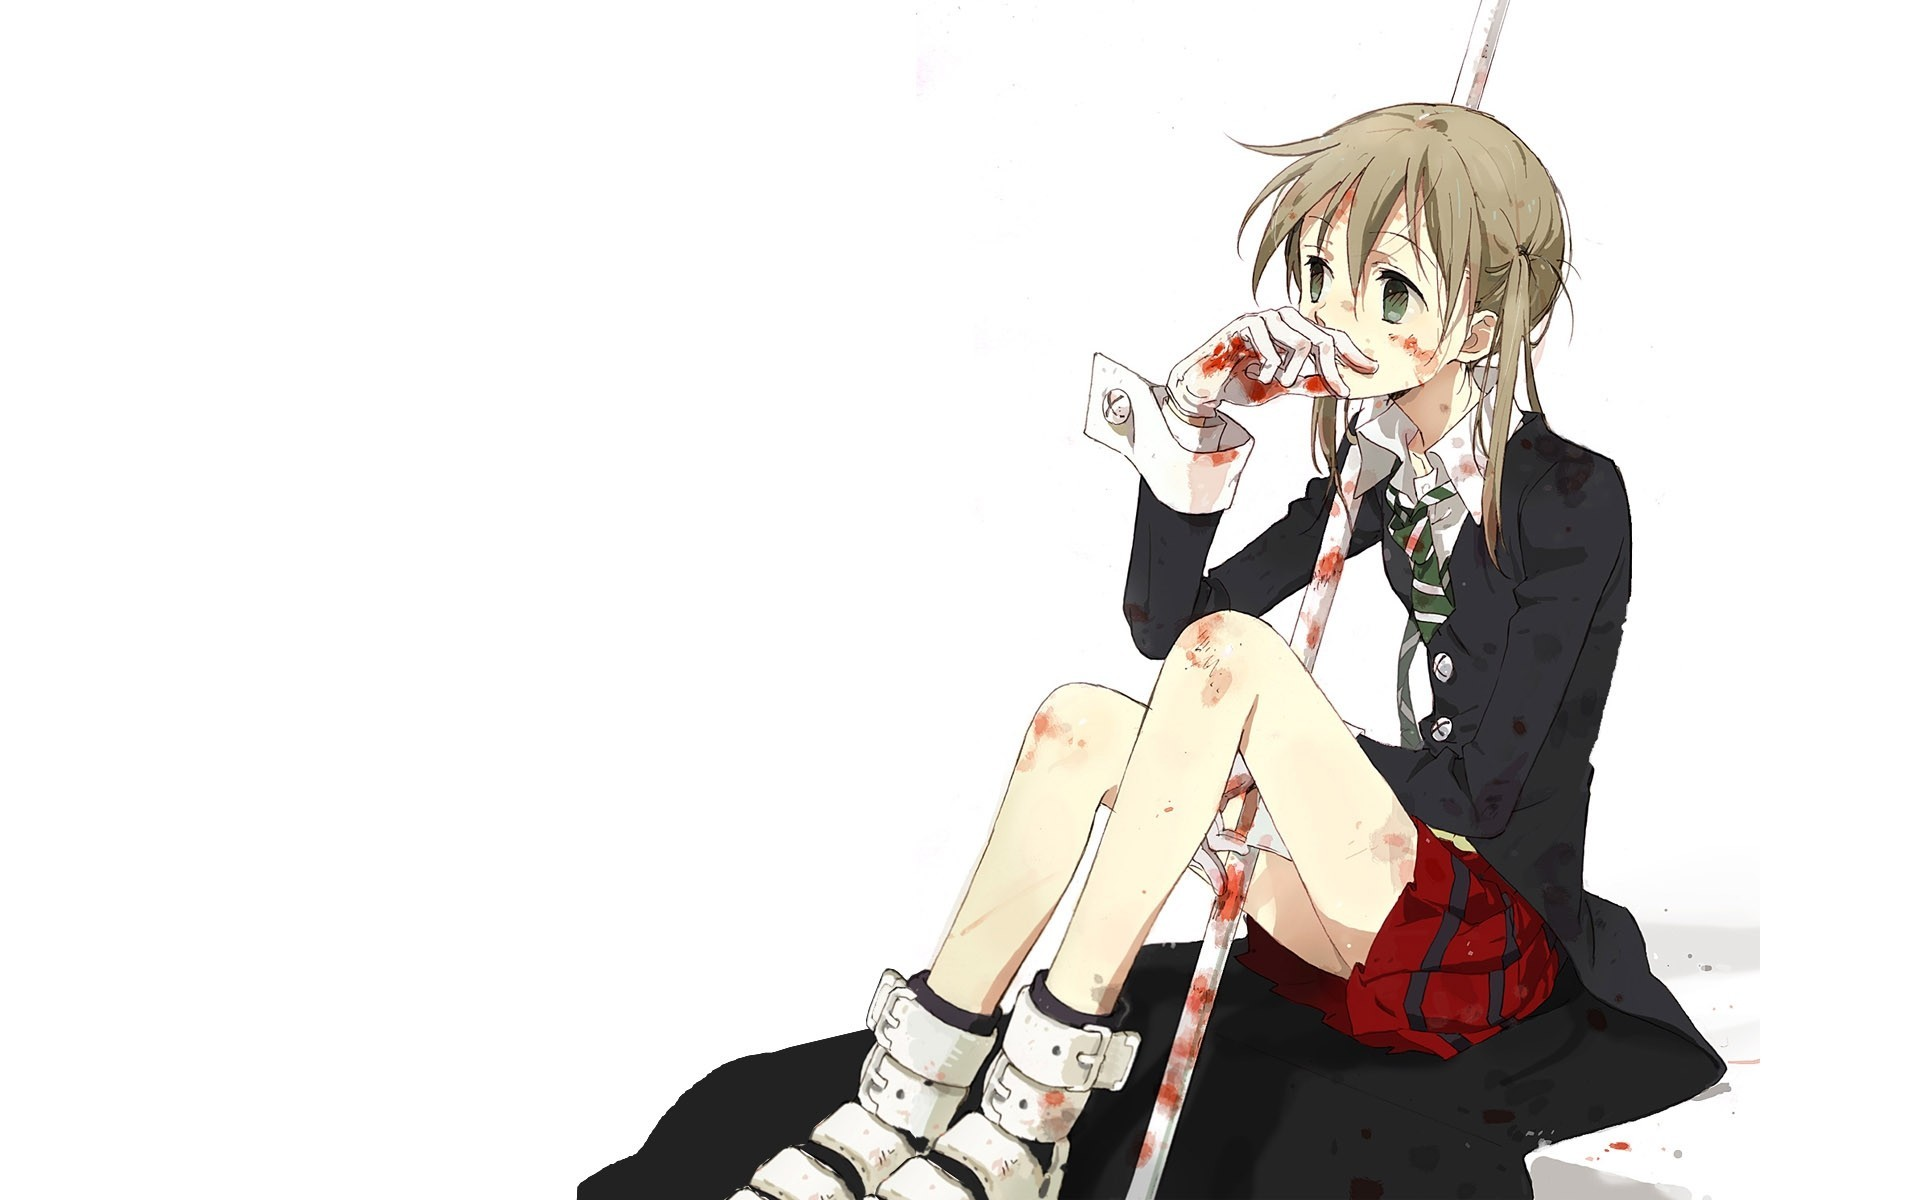 soul eater Albarn Maka HD Wallpaper